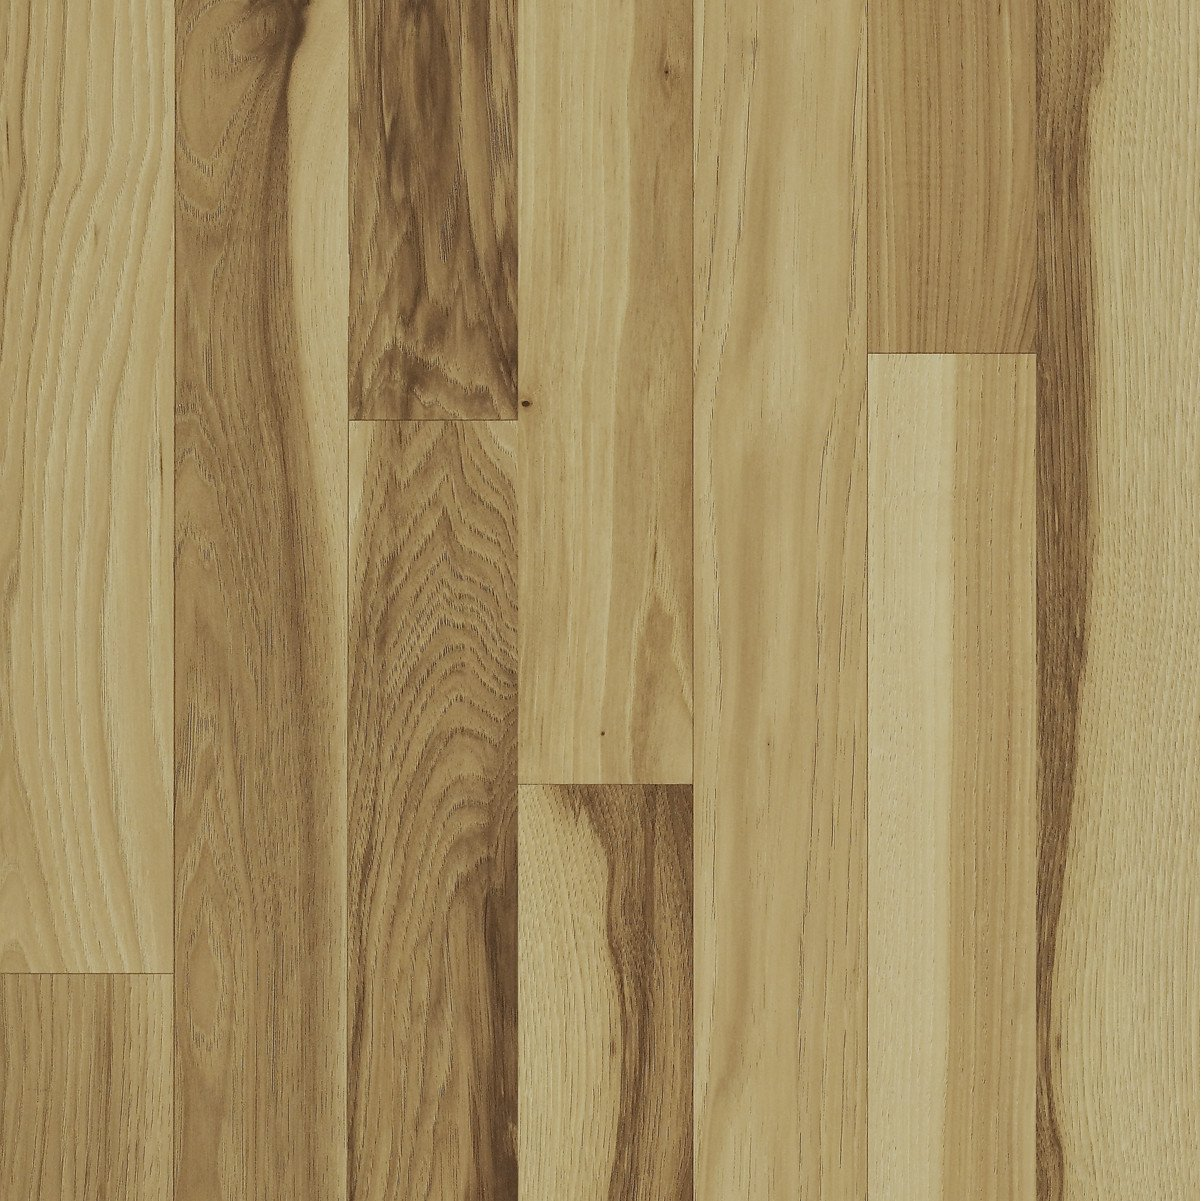 Luxury Laminate Flooring Tile